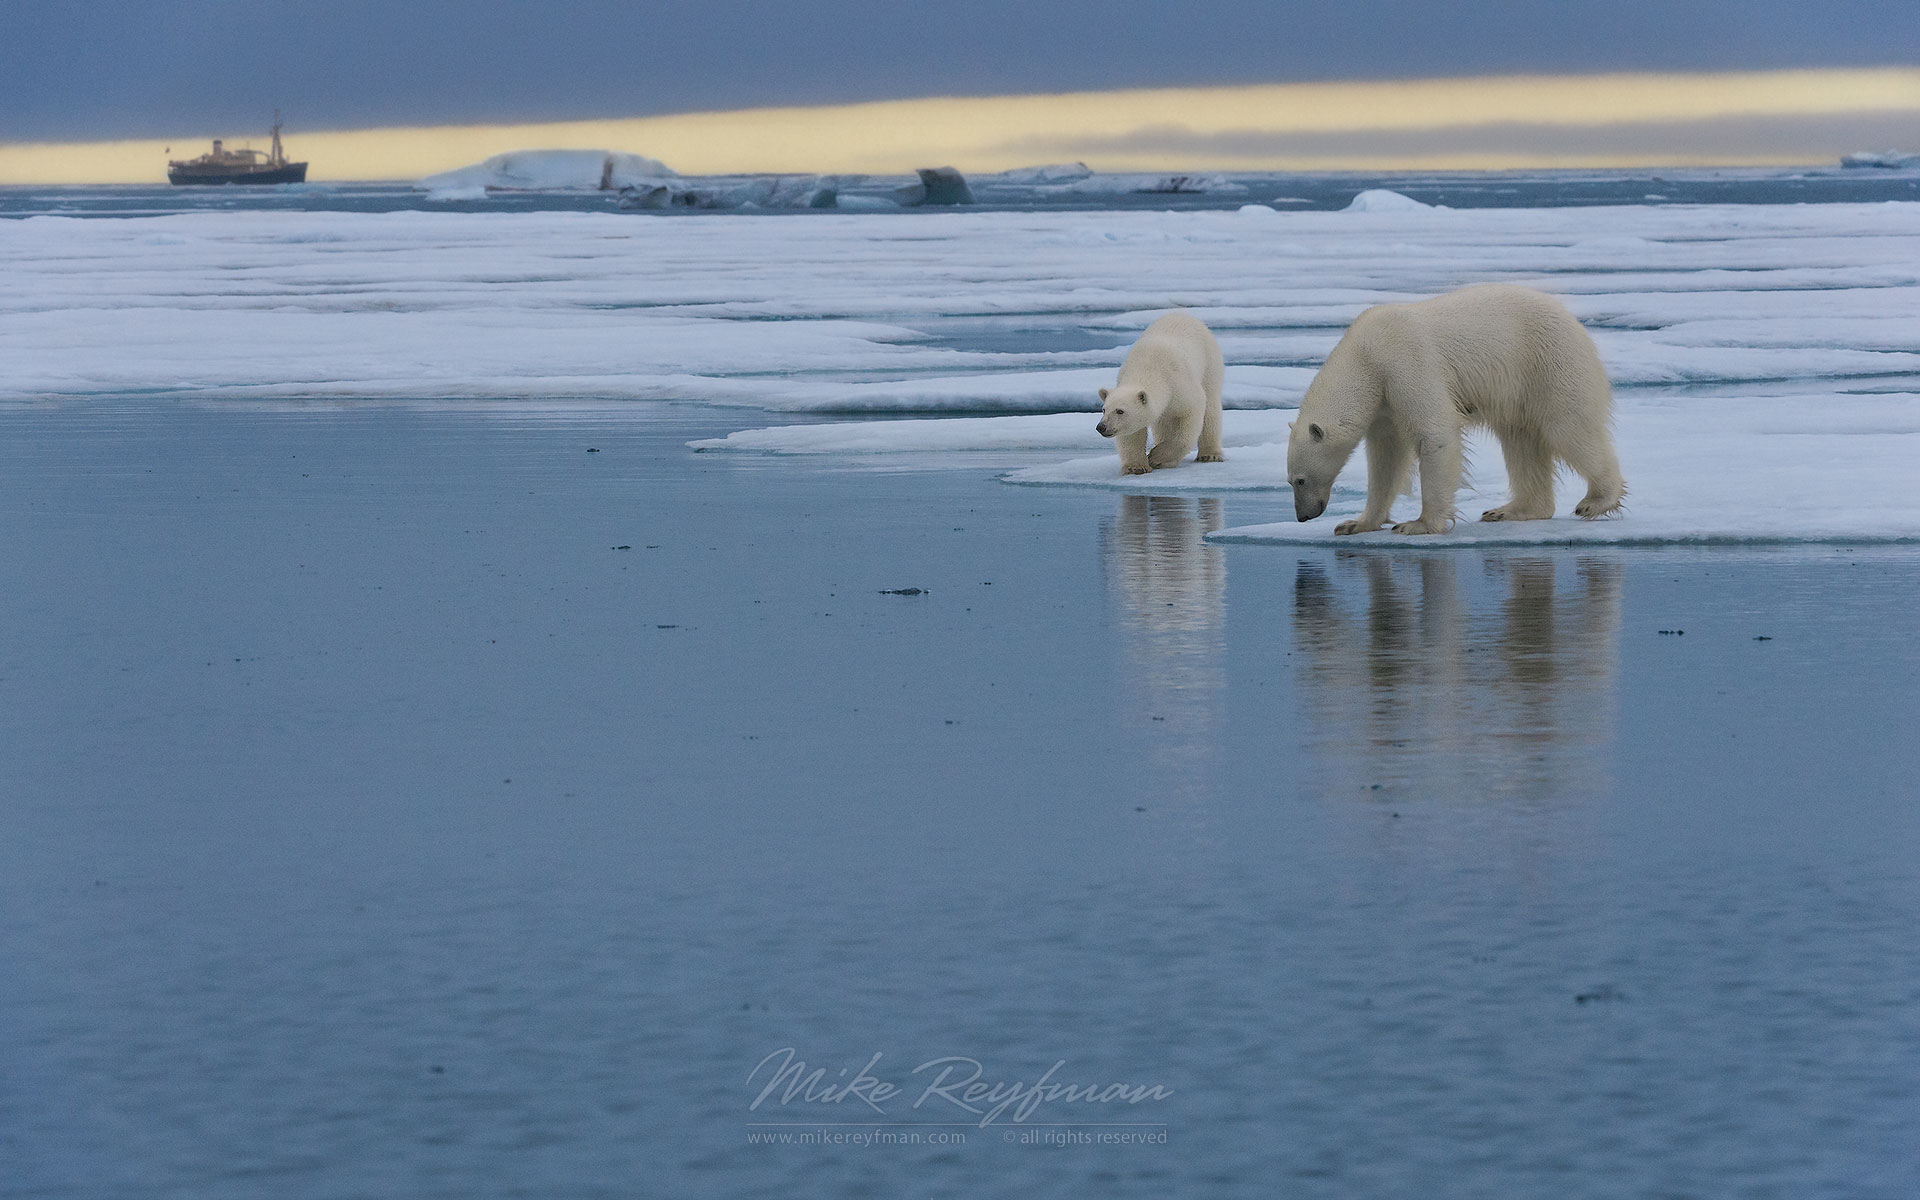 Femail polar bear with cub standing on the melting ice along Spitsbergen coast with M/S Origo on the background. Svalbard, Norway. - Polar-Bears-Svalbard-Spitsbergen-Norway - Mike Reyfman Photography